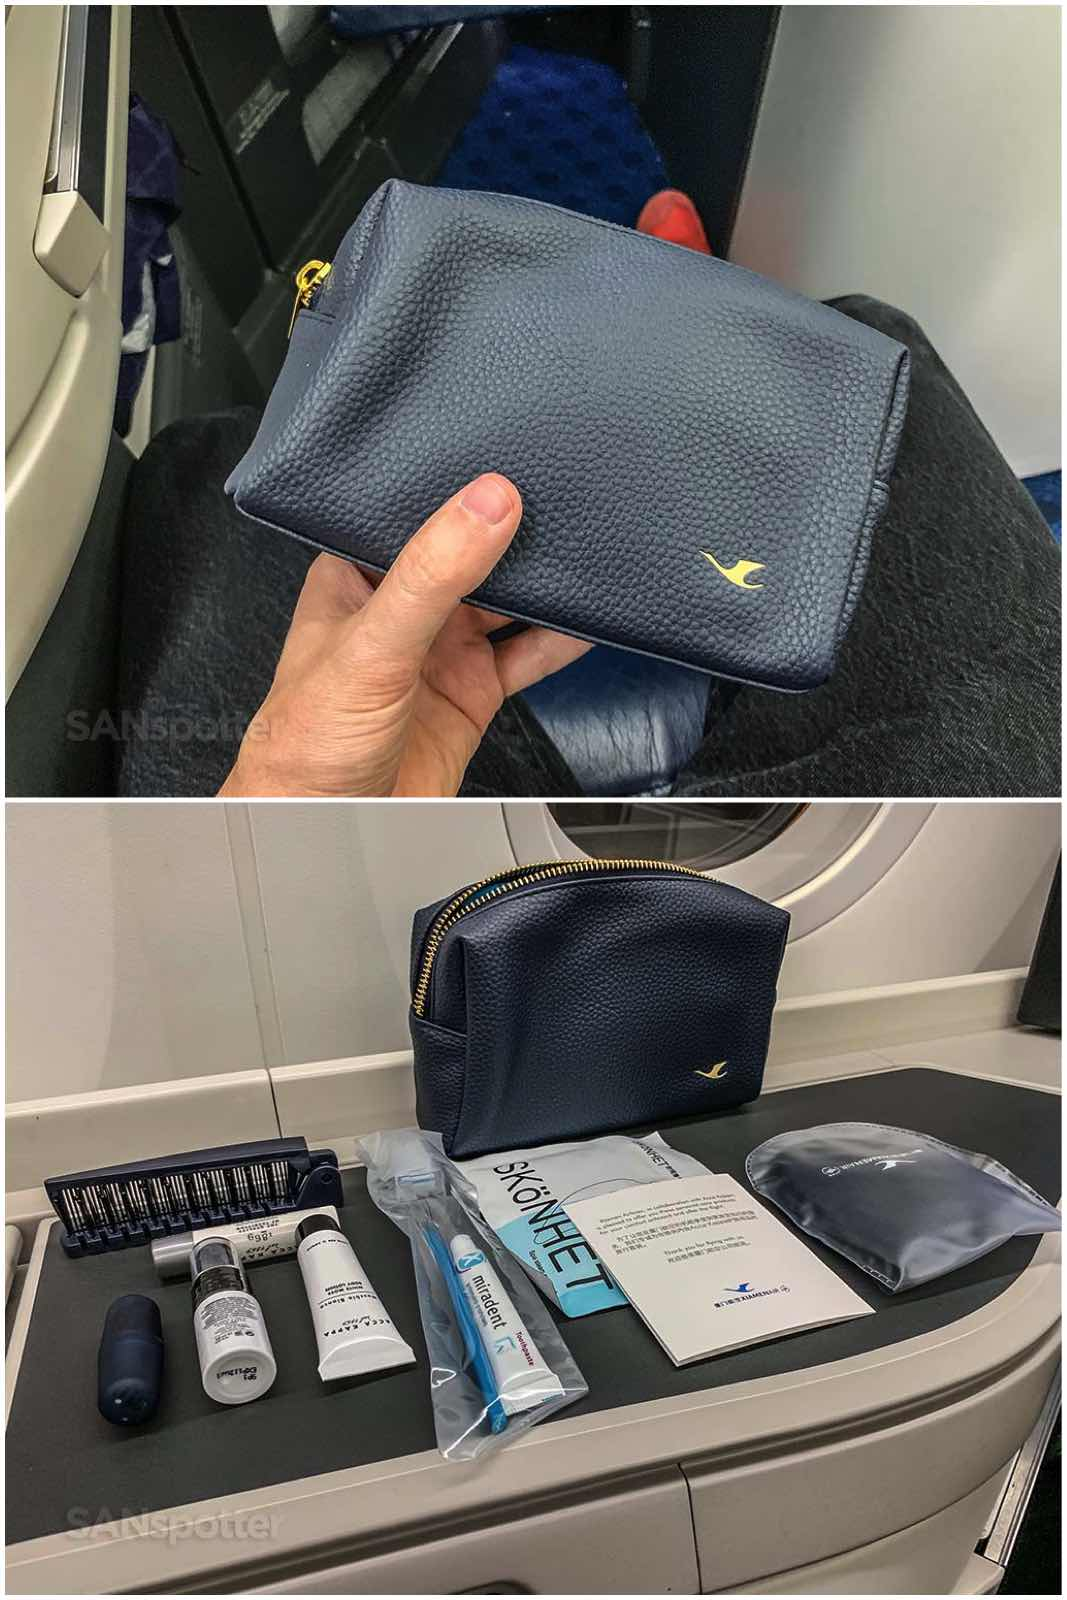 Xiamen Airlines business class amenity kit